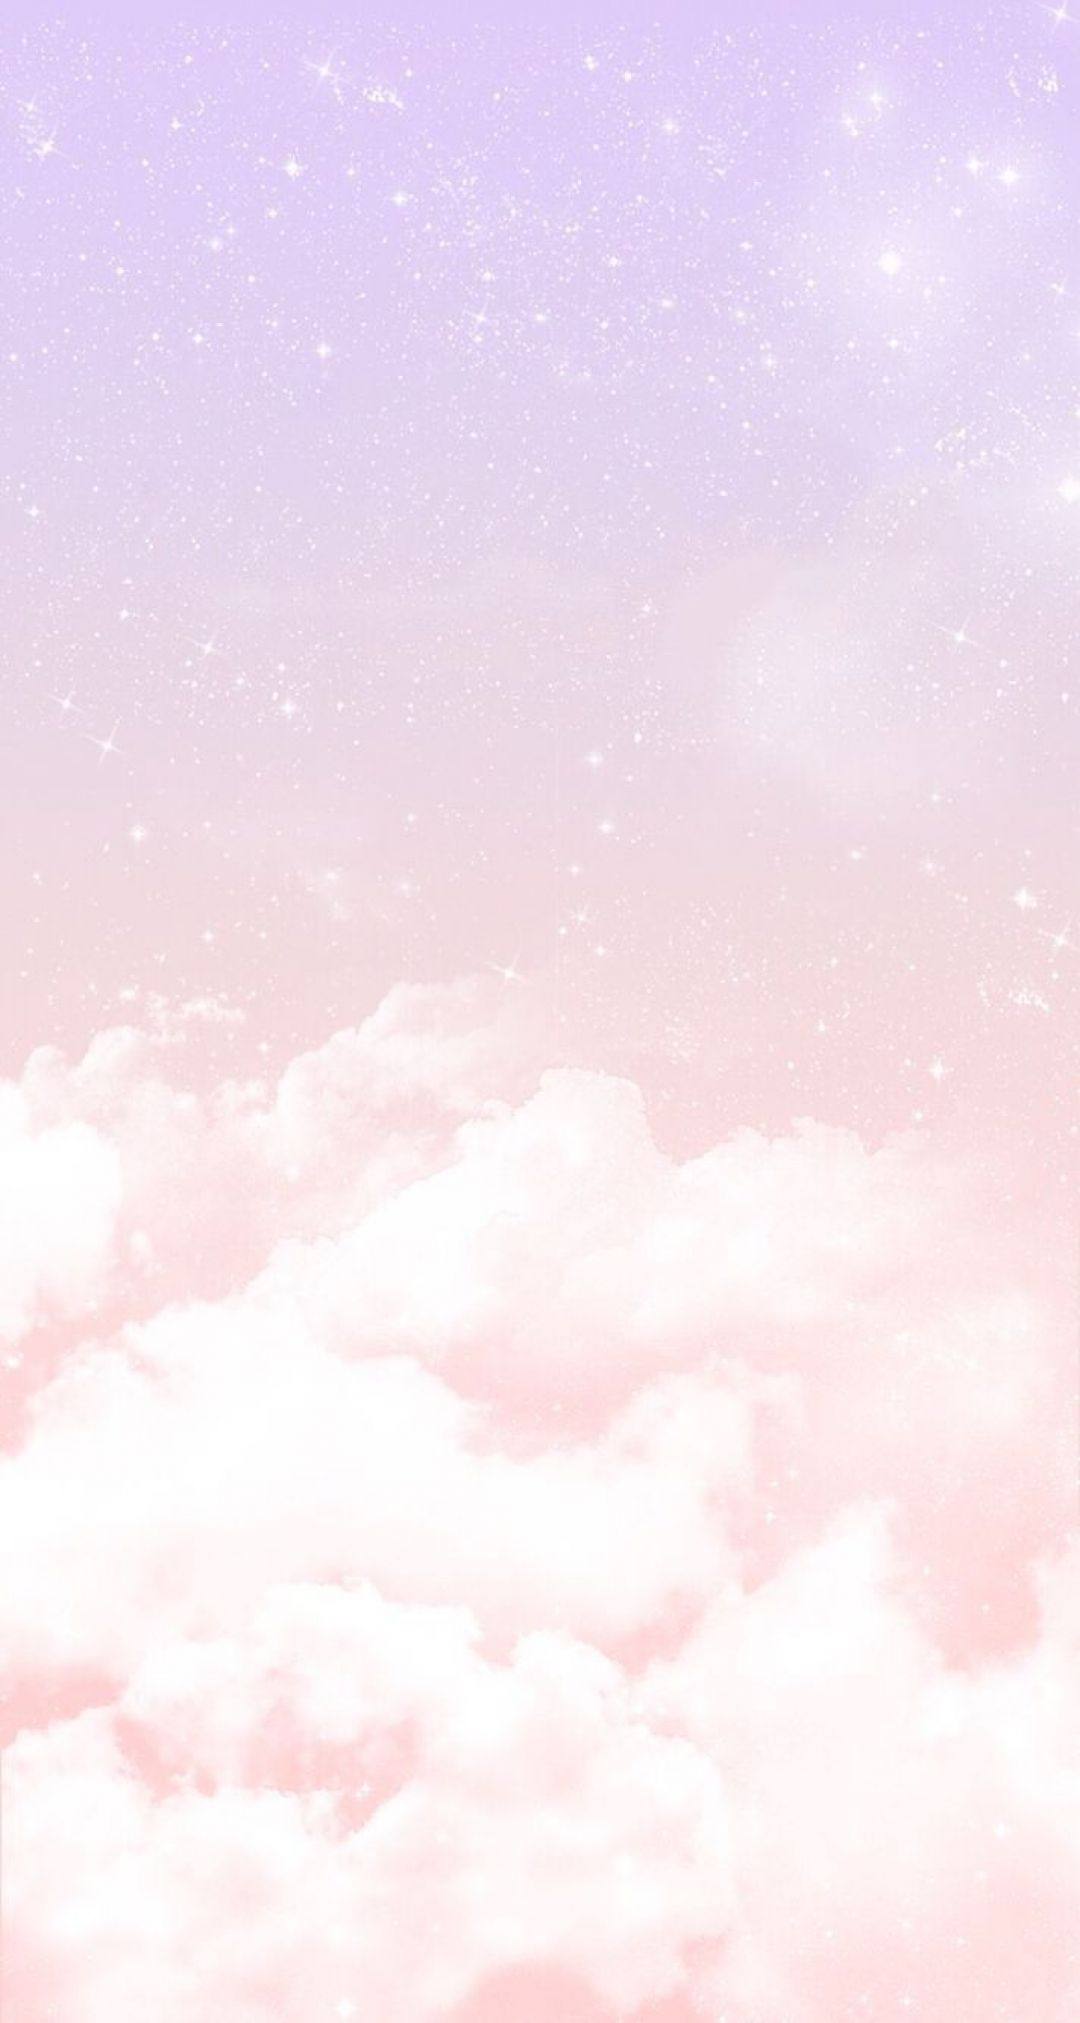 35 Pastel Pink Android Iphone Desktop Hd Backgrounds Wallpapers 1080p 4k 1080x2023 2021